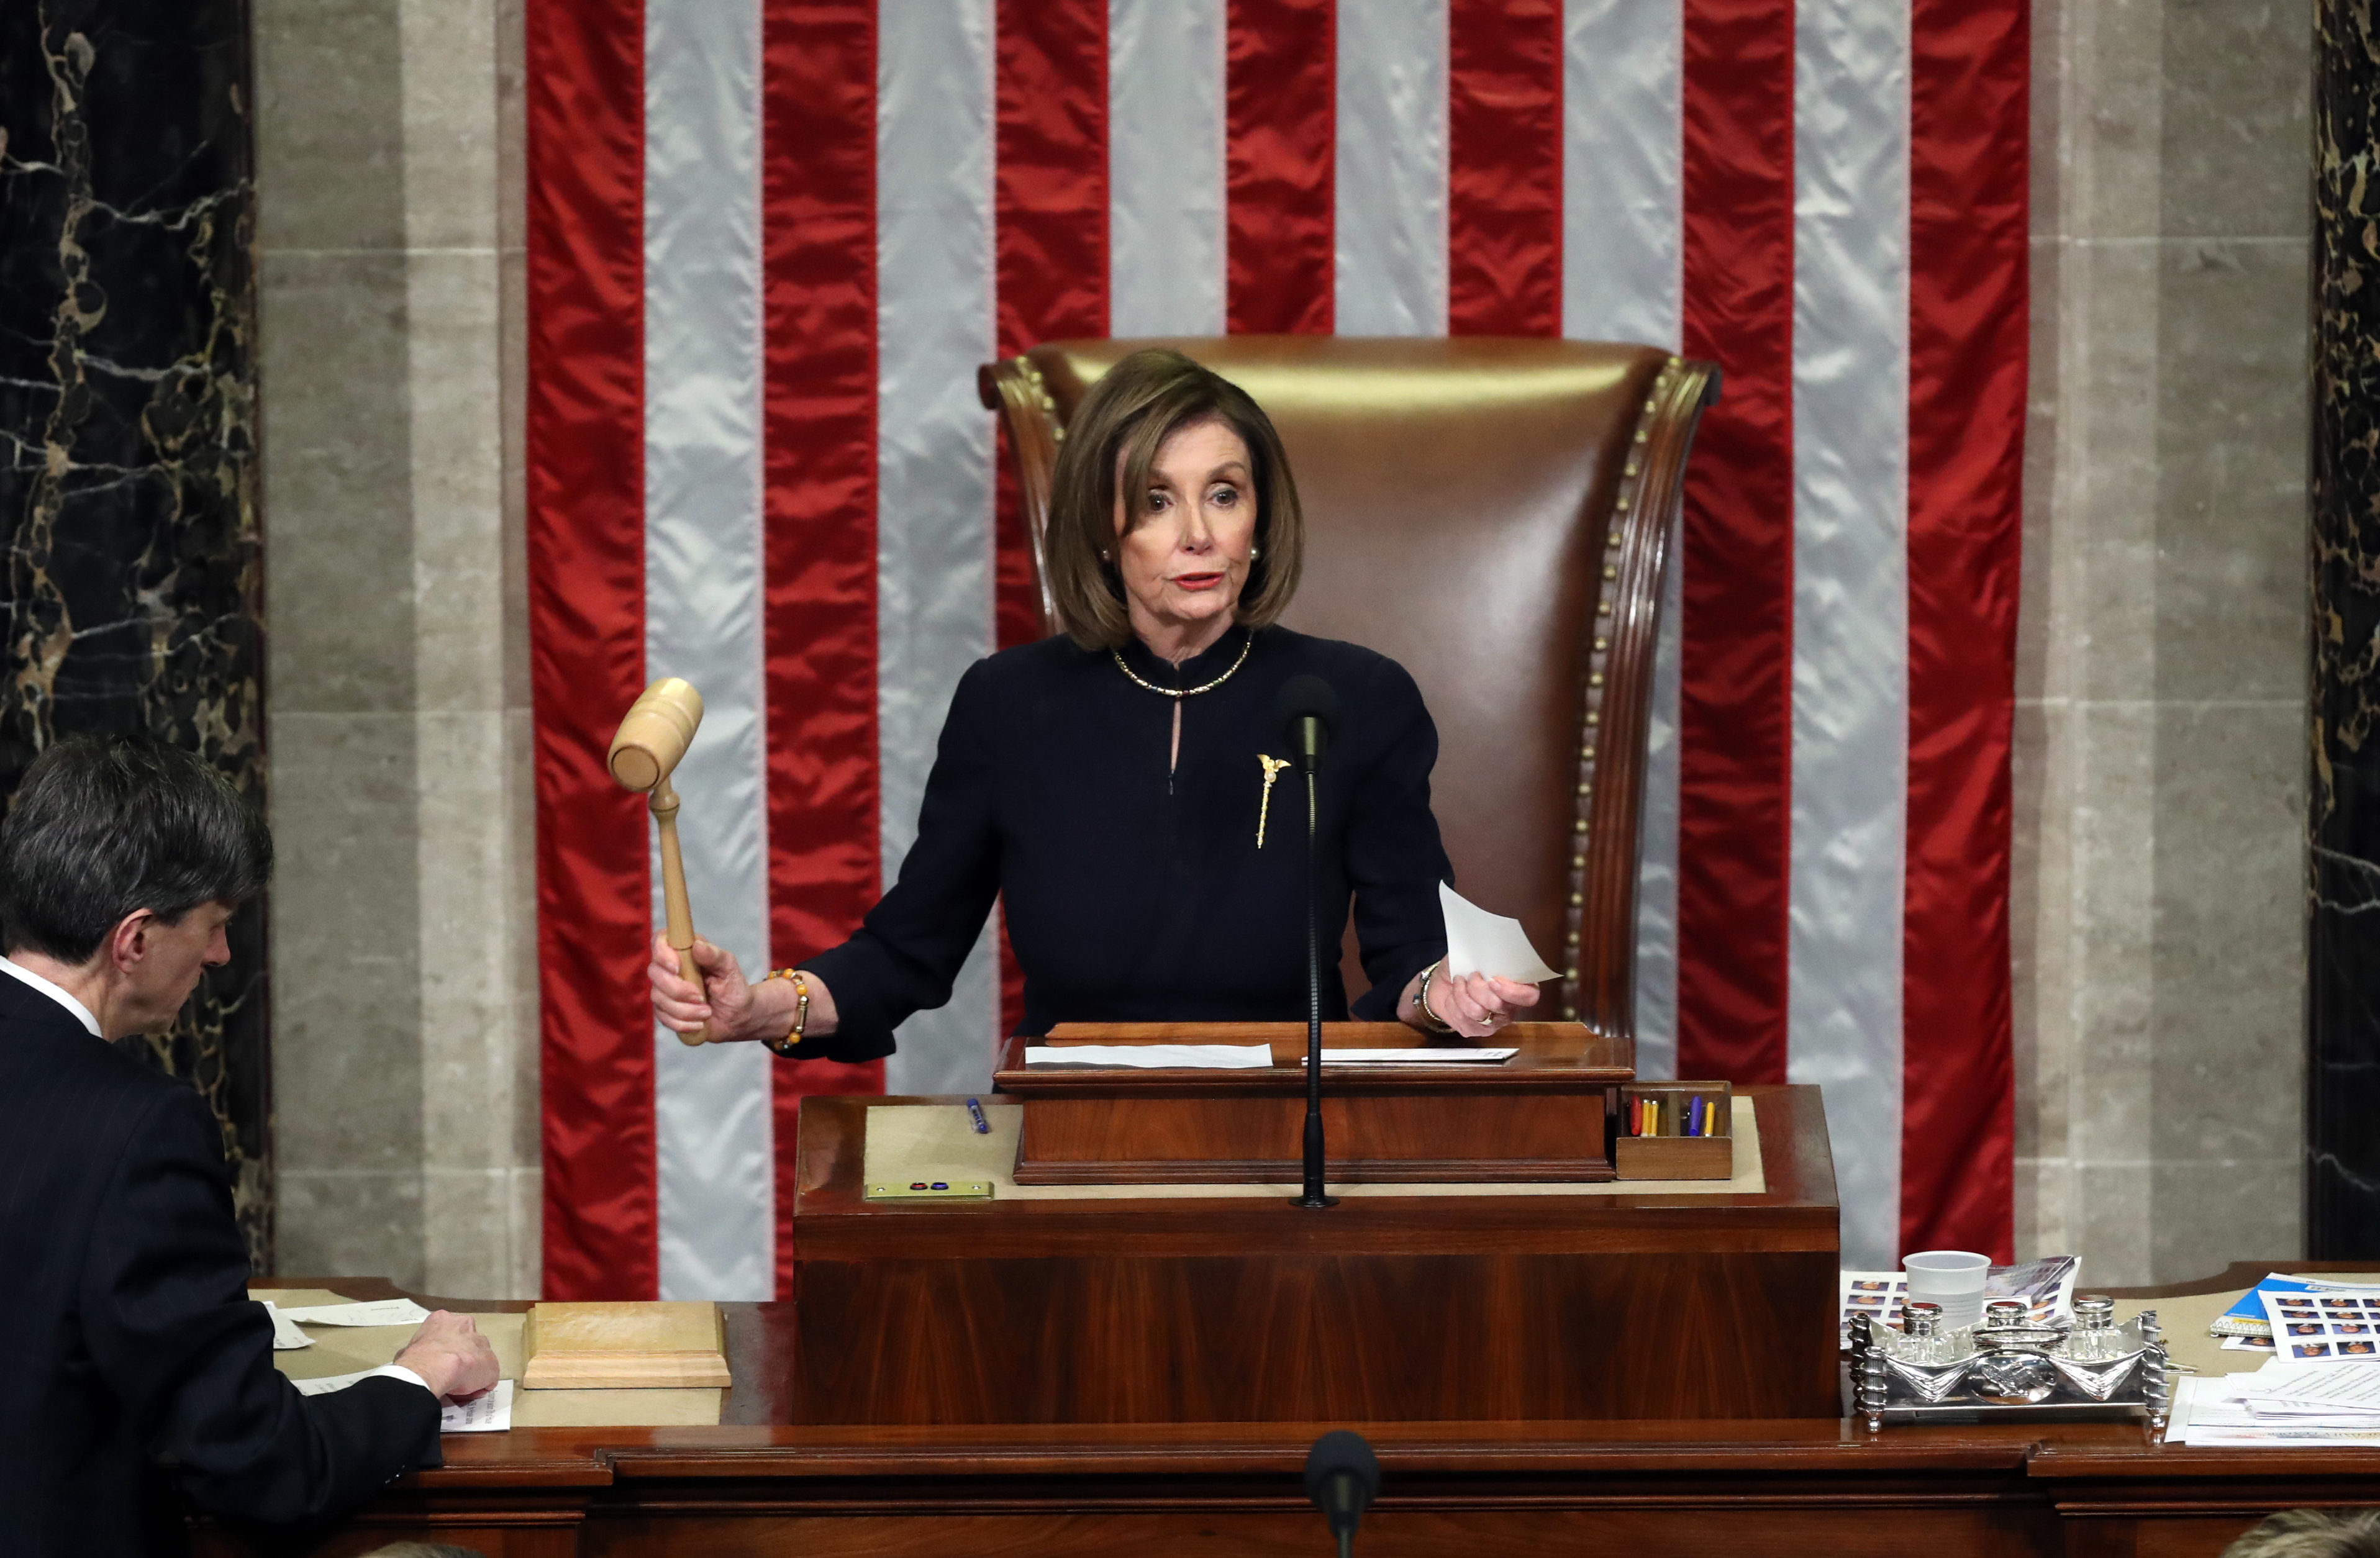 WASHINGTON, DC - DECEMBER 18: Speaker of the House Nancy Pelosi (D-CA) presides over Resolution 755 as the House of Representatives votes on the second article of impeachment of US President Donald Trump at in the House Chamber at the US Capitol Building on December 18, 2019 in Washington, DC. The U.S. House of Representatives voted to successfully pass two articles of impeachment against President Donald Trump on charges of abuse of power and obstruction of Congress. (Photo by Chip Somodevilla/Getty Images)